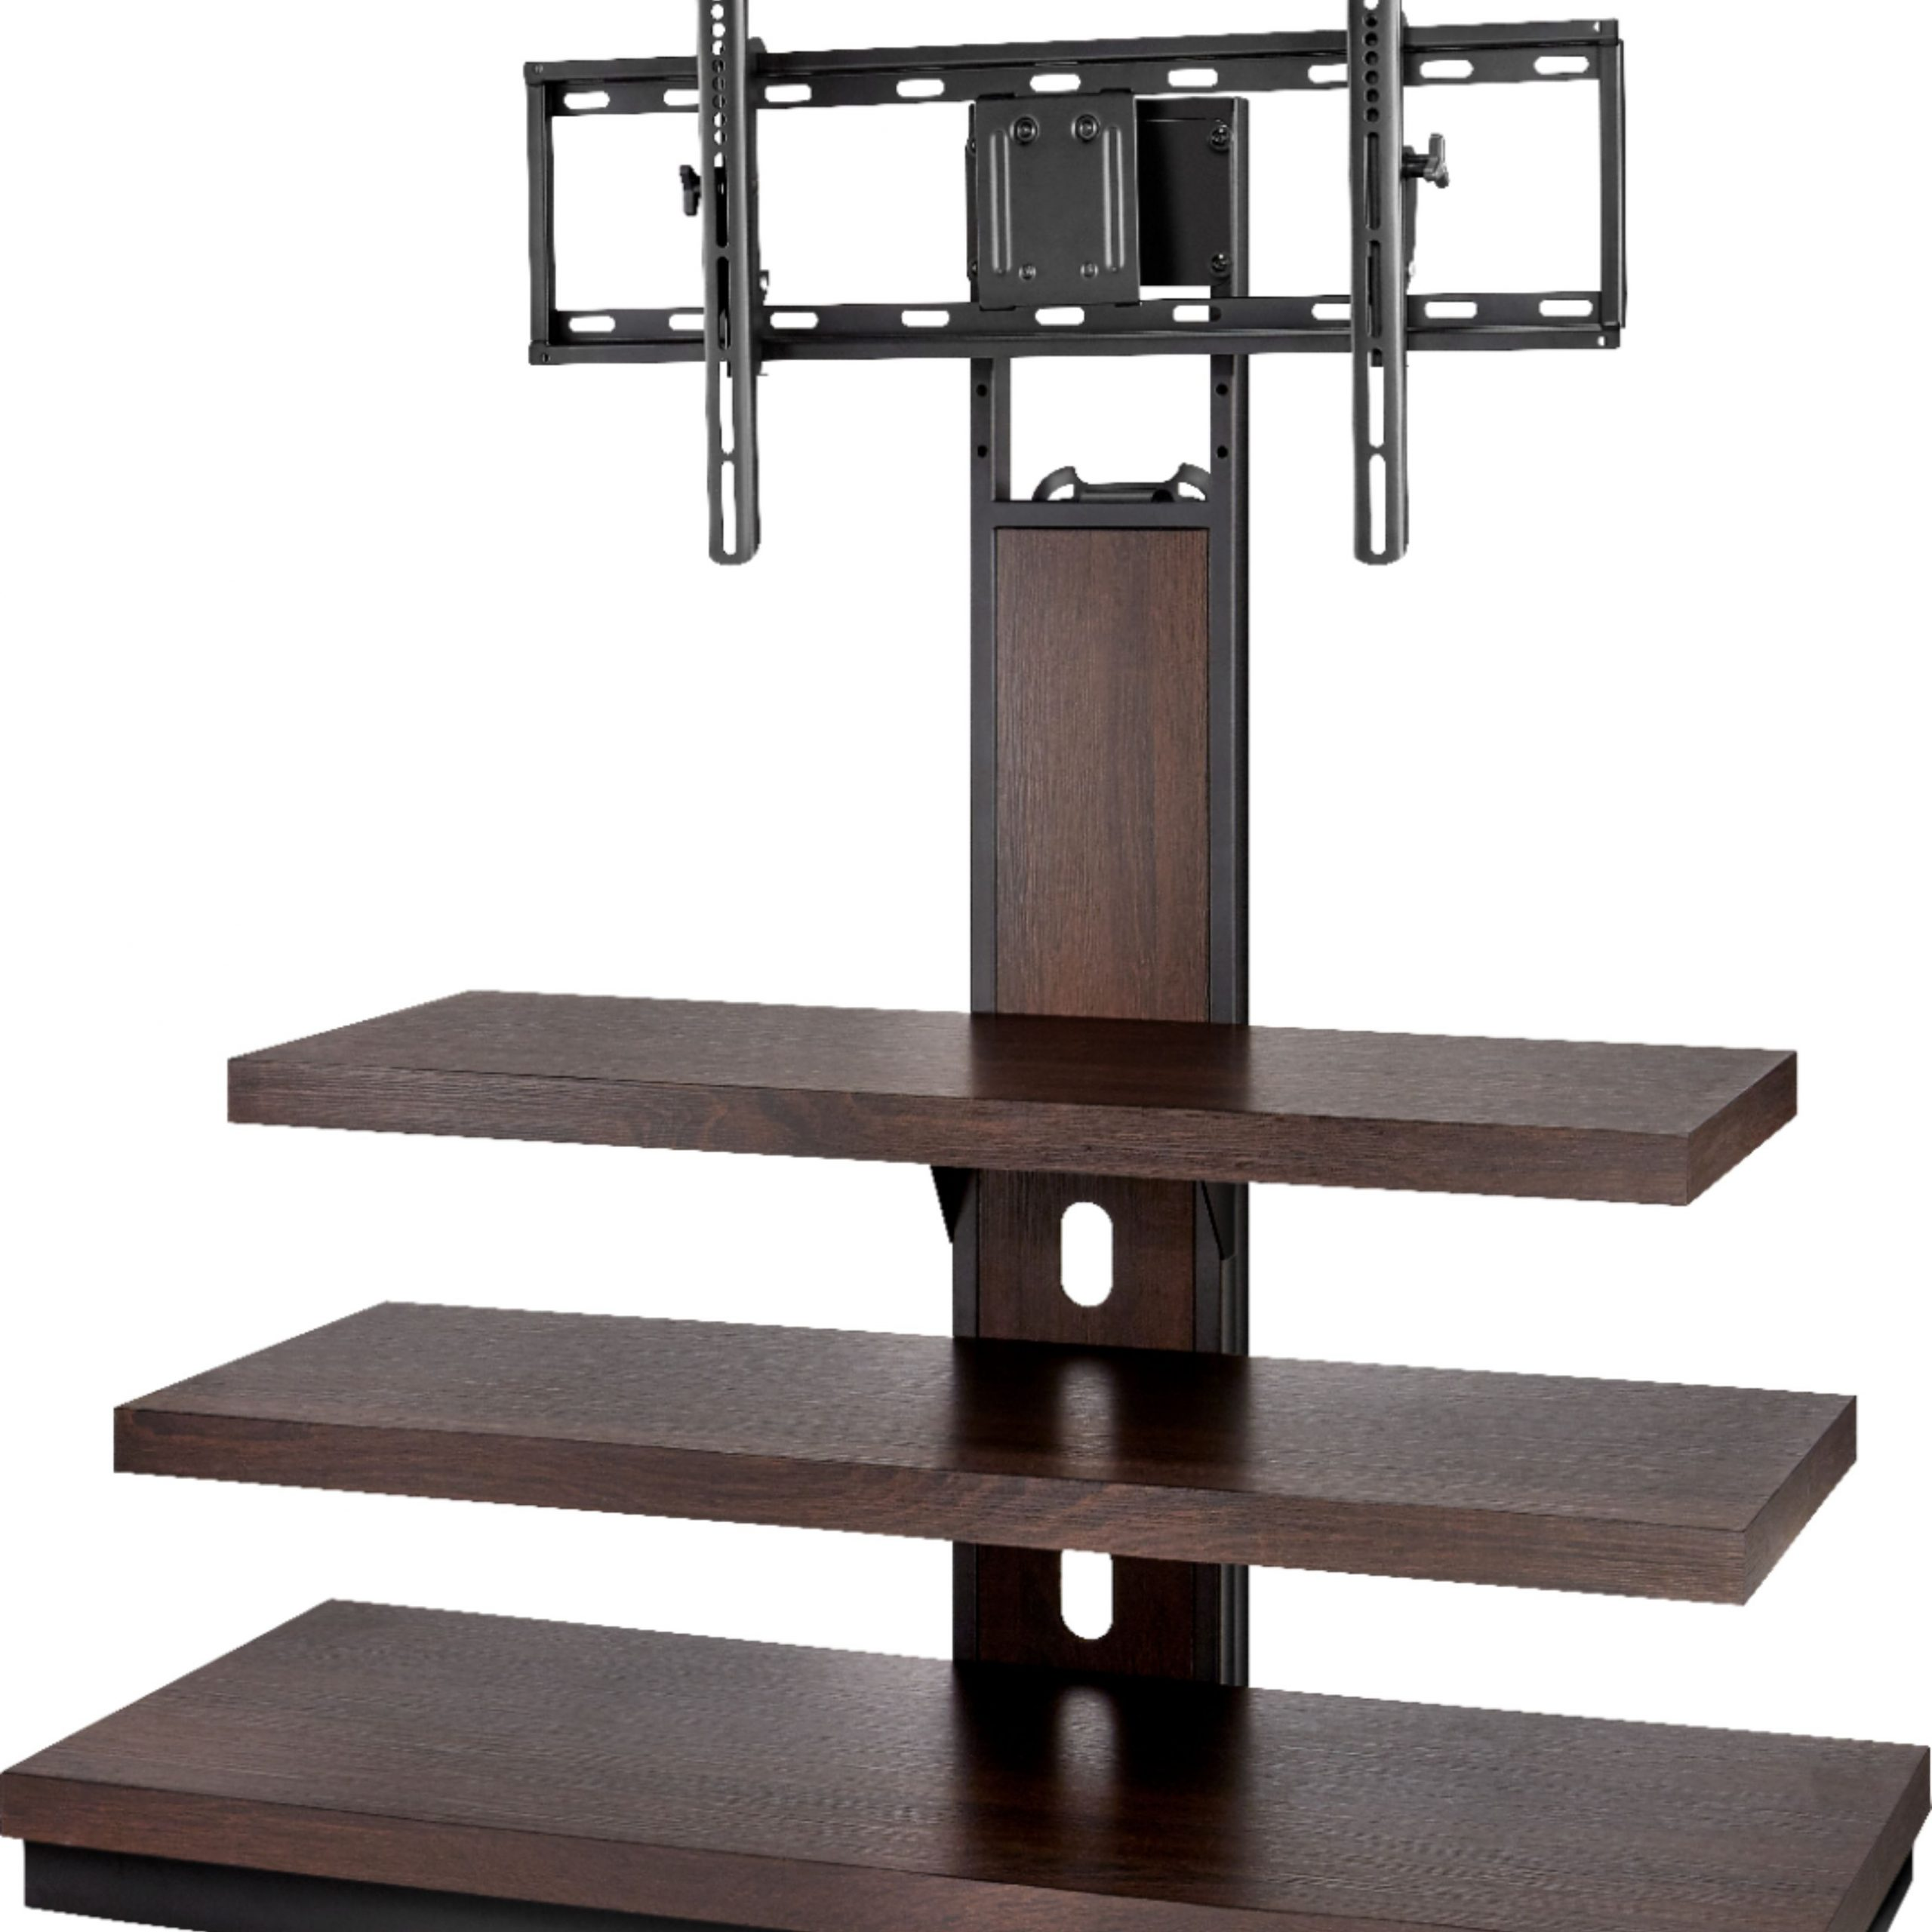 """Spellman Tv Stands For Tvs Up To 55"""" With Regard To Current Insignia™ Tv Stand For Most Flat Panel Tvs Up To 55"""" Dark (View 18 of 25)"""